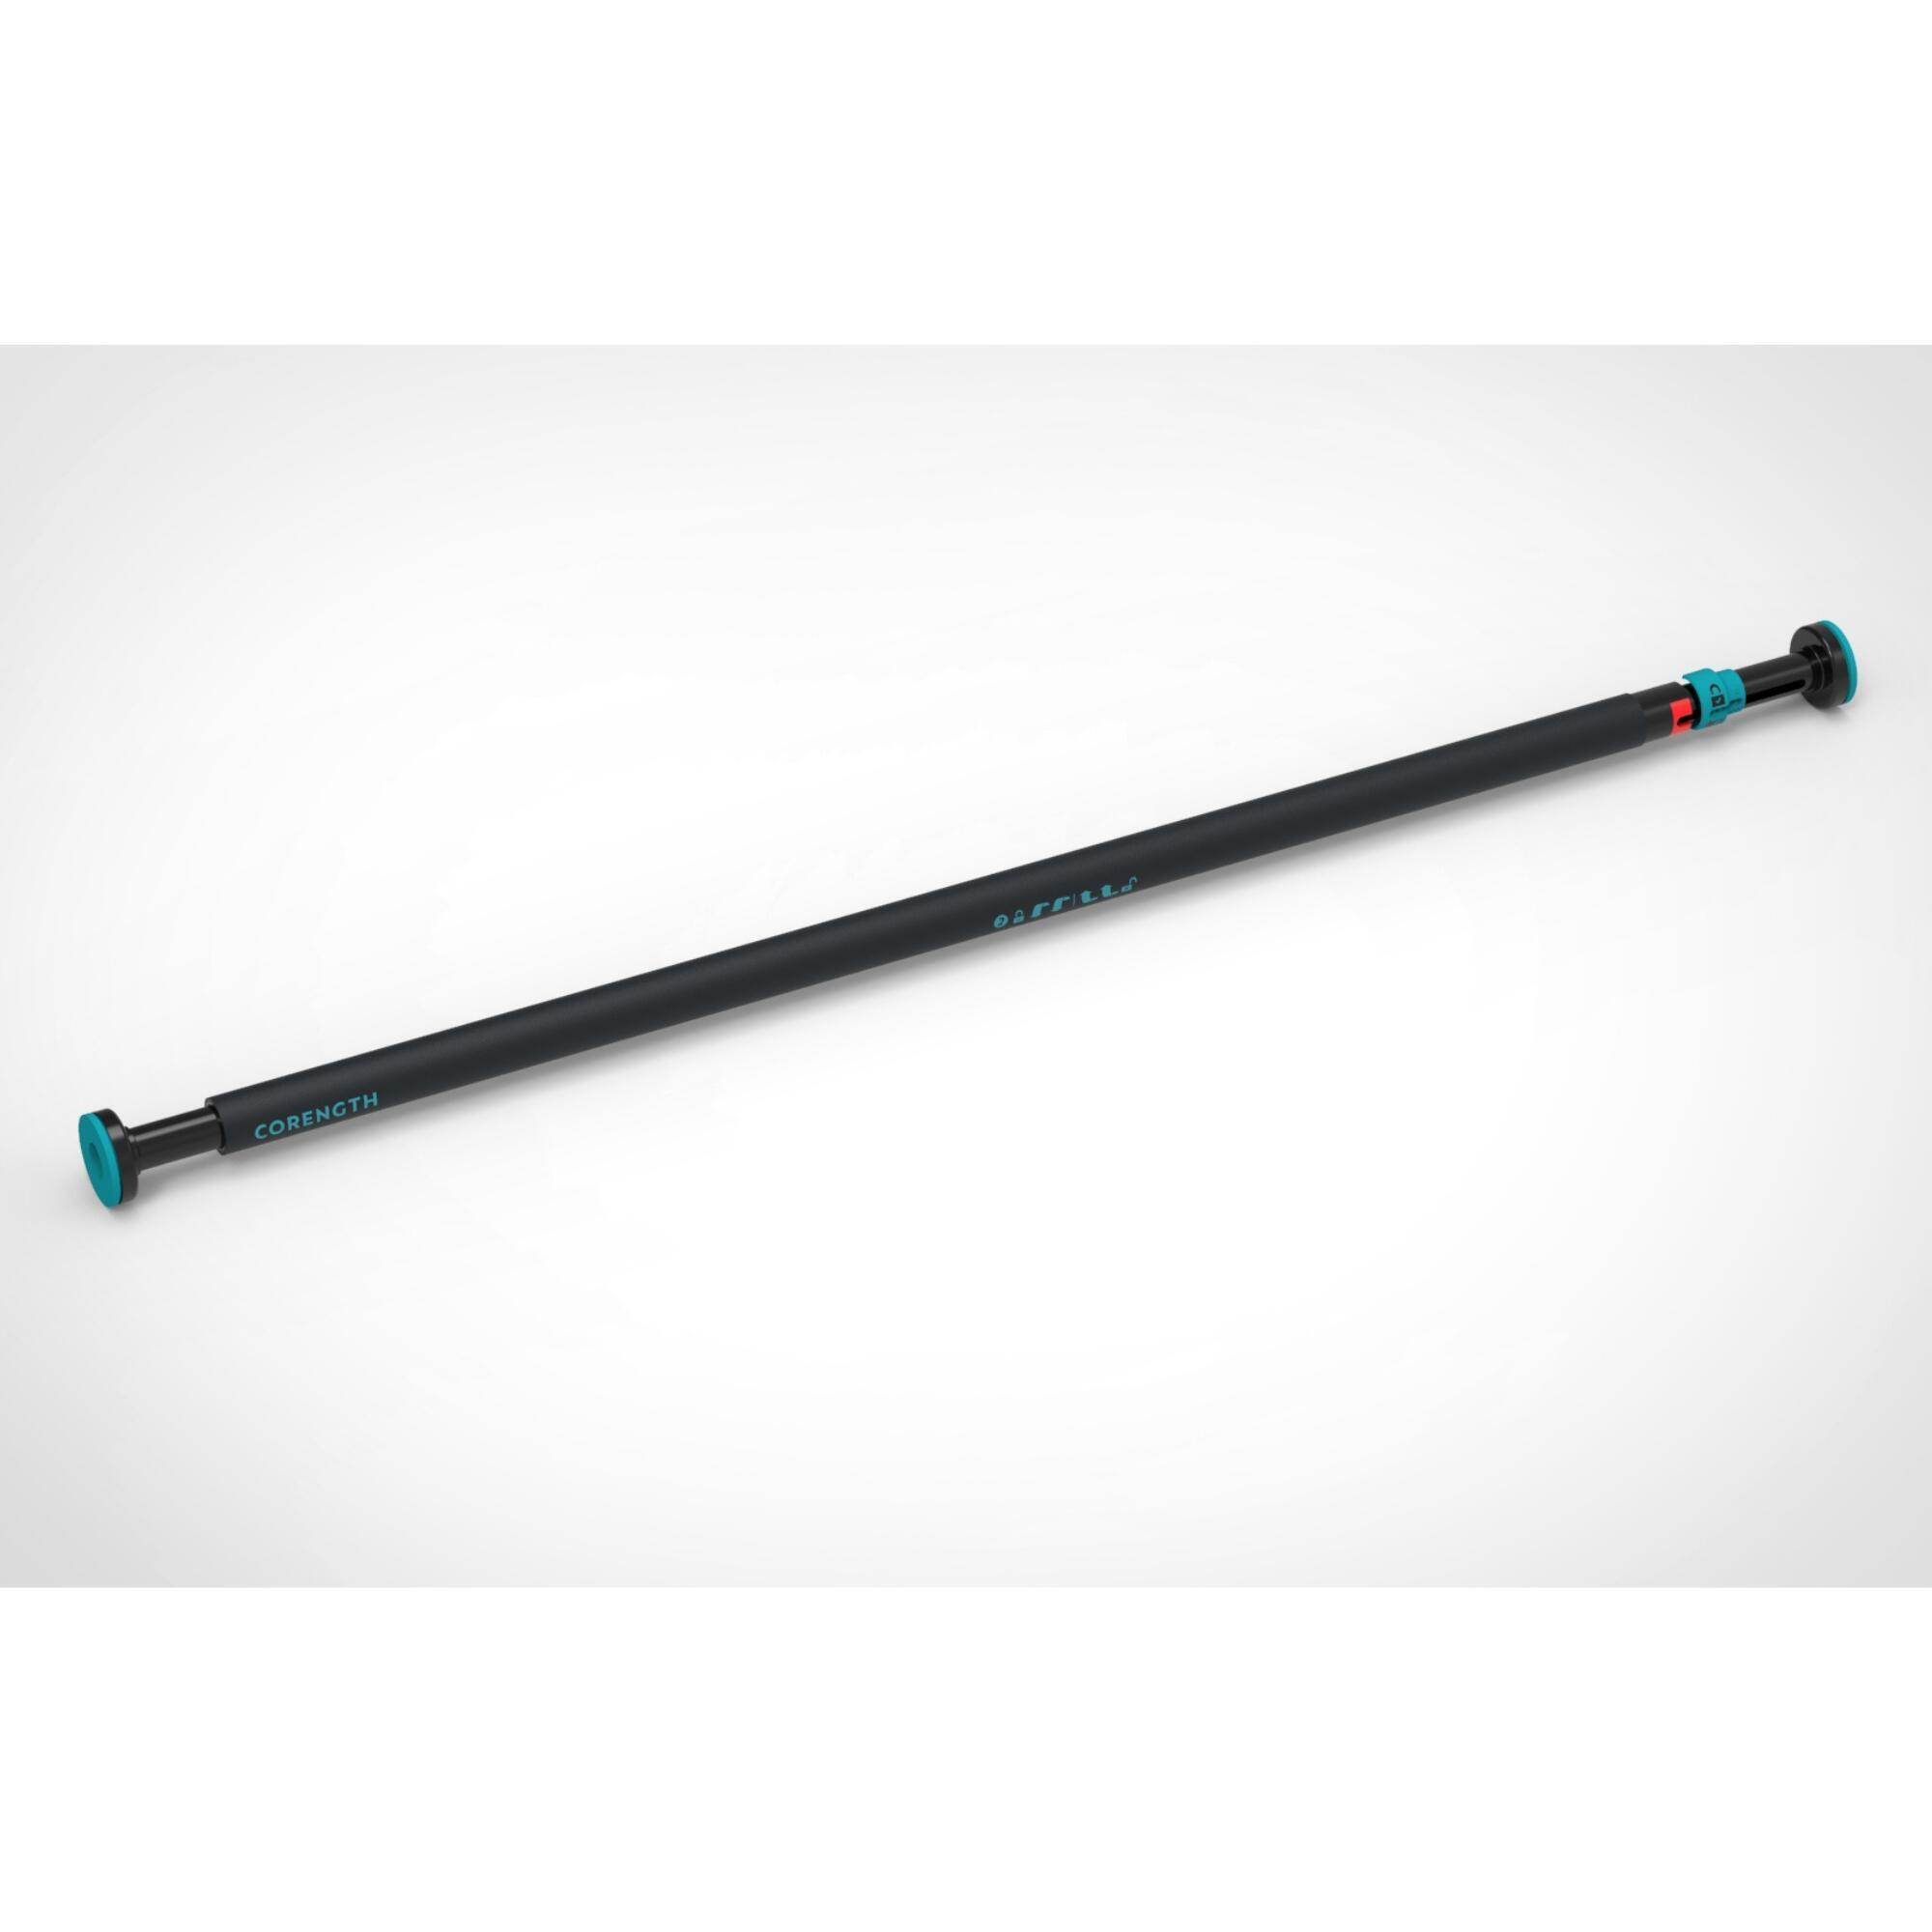 Lockable Pull Up Bar 70 Cm Decathlon